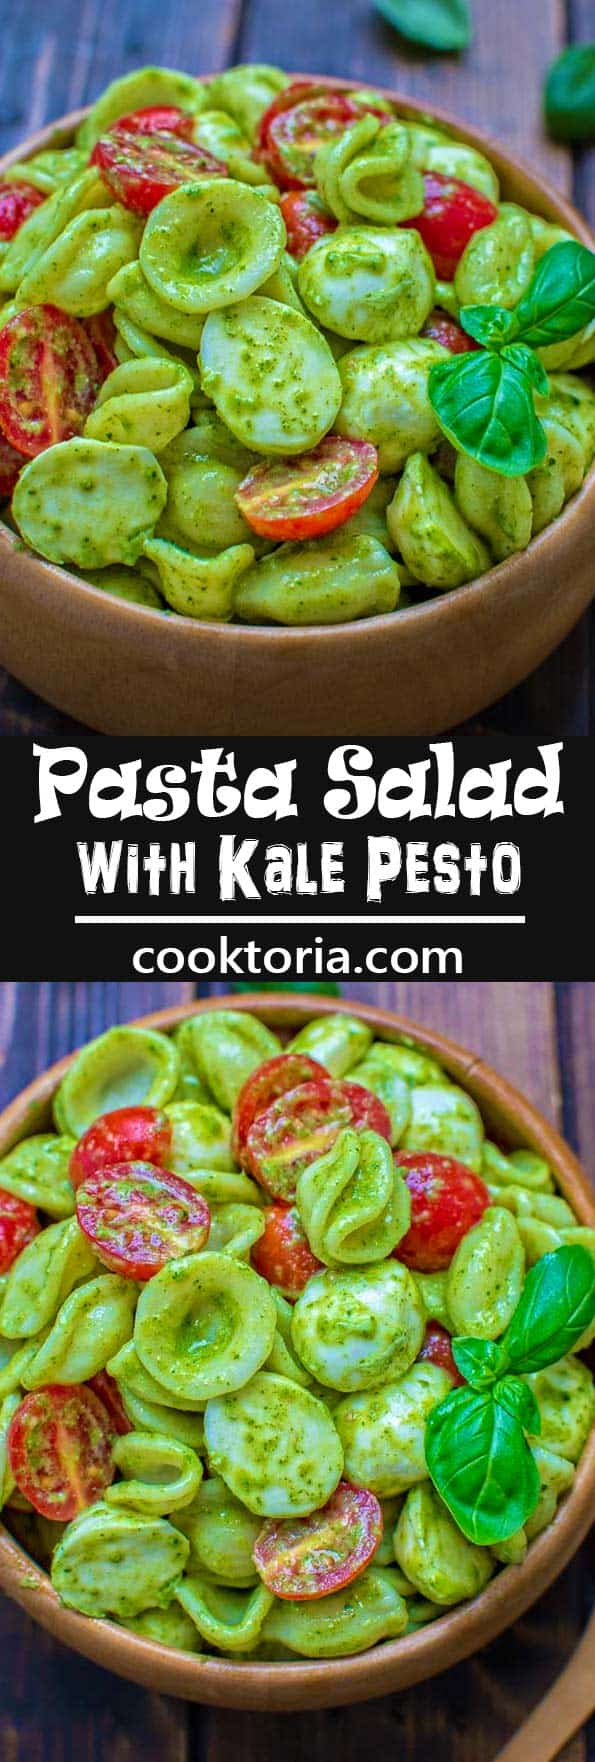 This filling and delicious Pasta Salad with Kale Pesto is truly one of the best pasta salads. So refreshing and addictive, you'll keep making it all summer long! ❤ COOKTORIA.COM